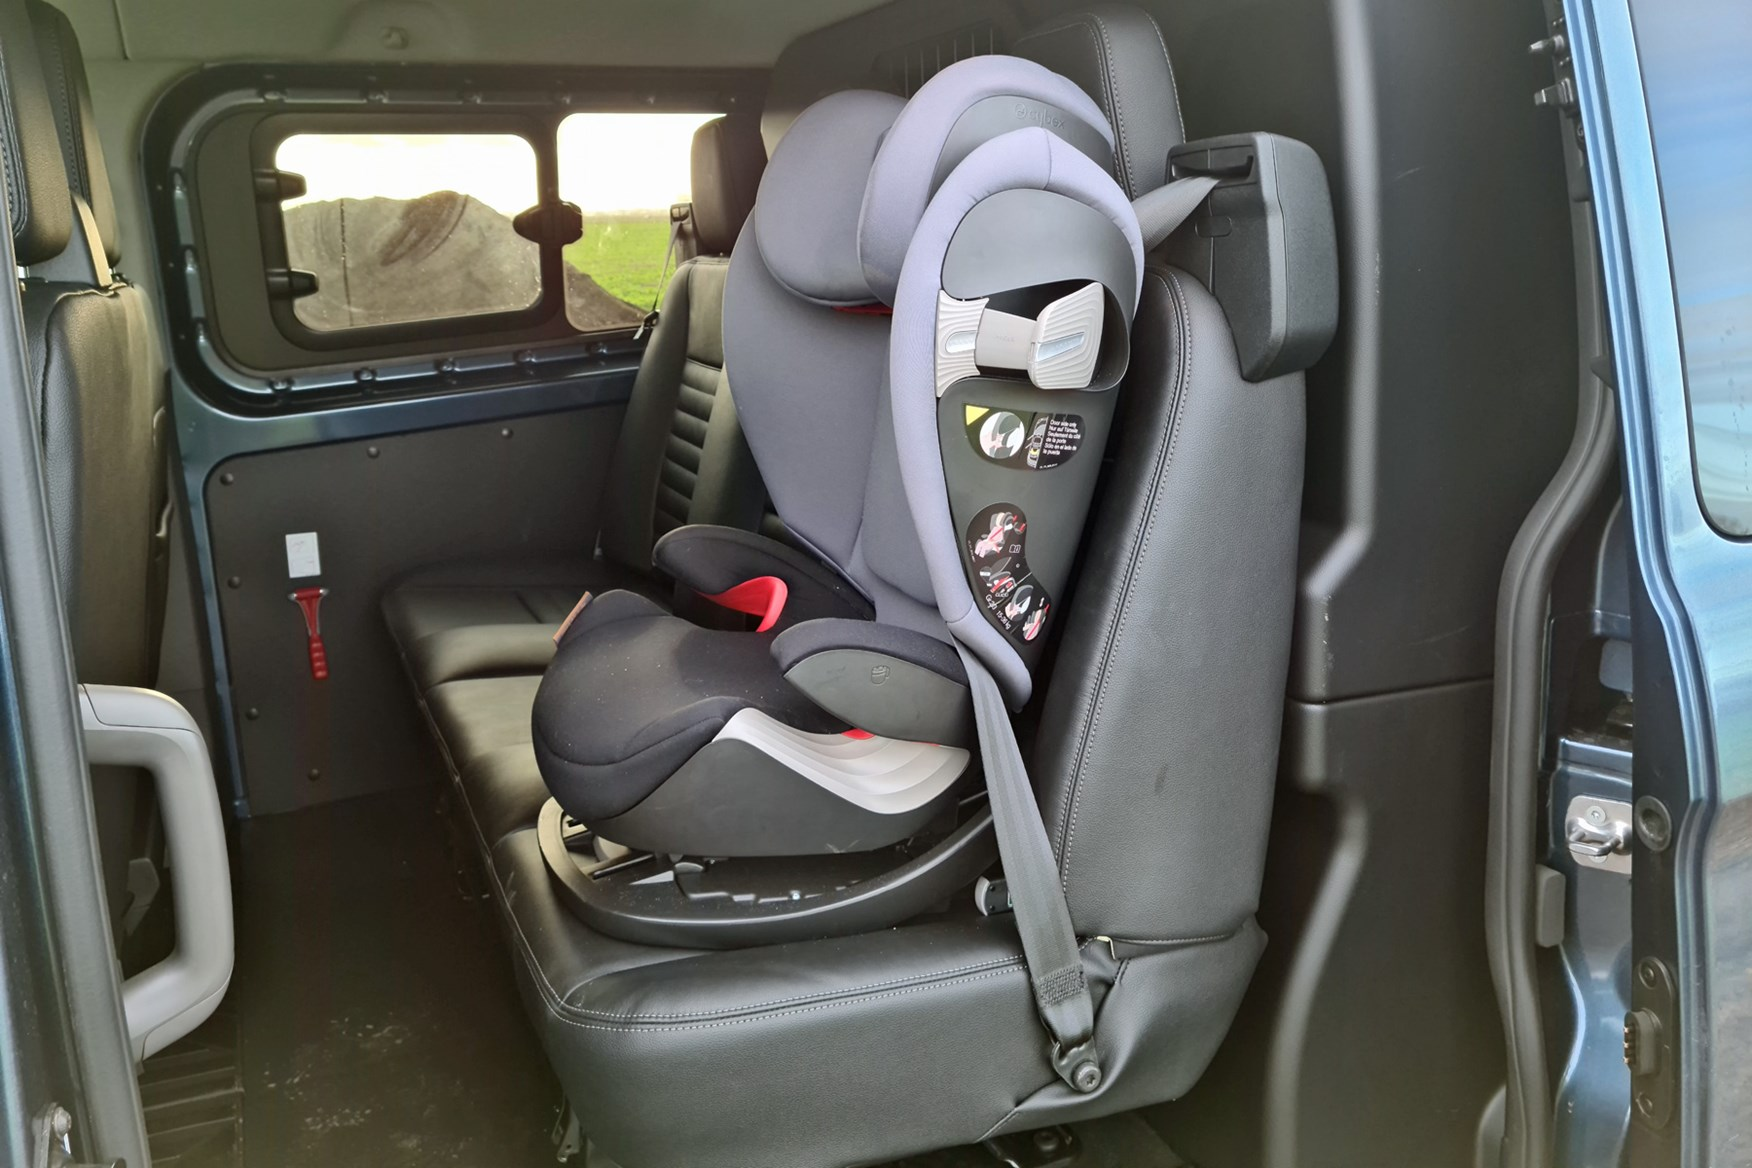 Ford Transit Custom Trail review, L2, DCiV, 2020, rear seats with child seat and Isofix